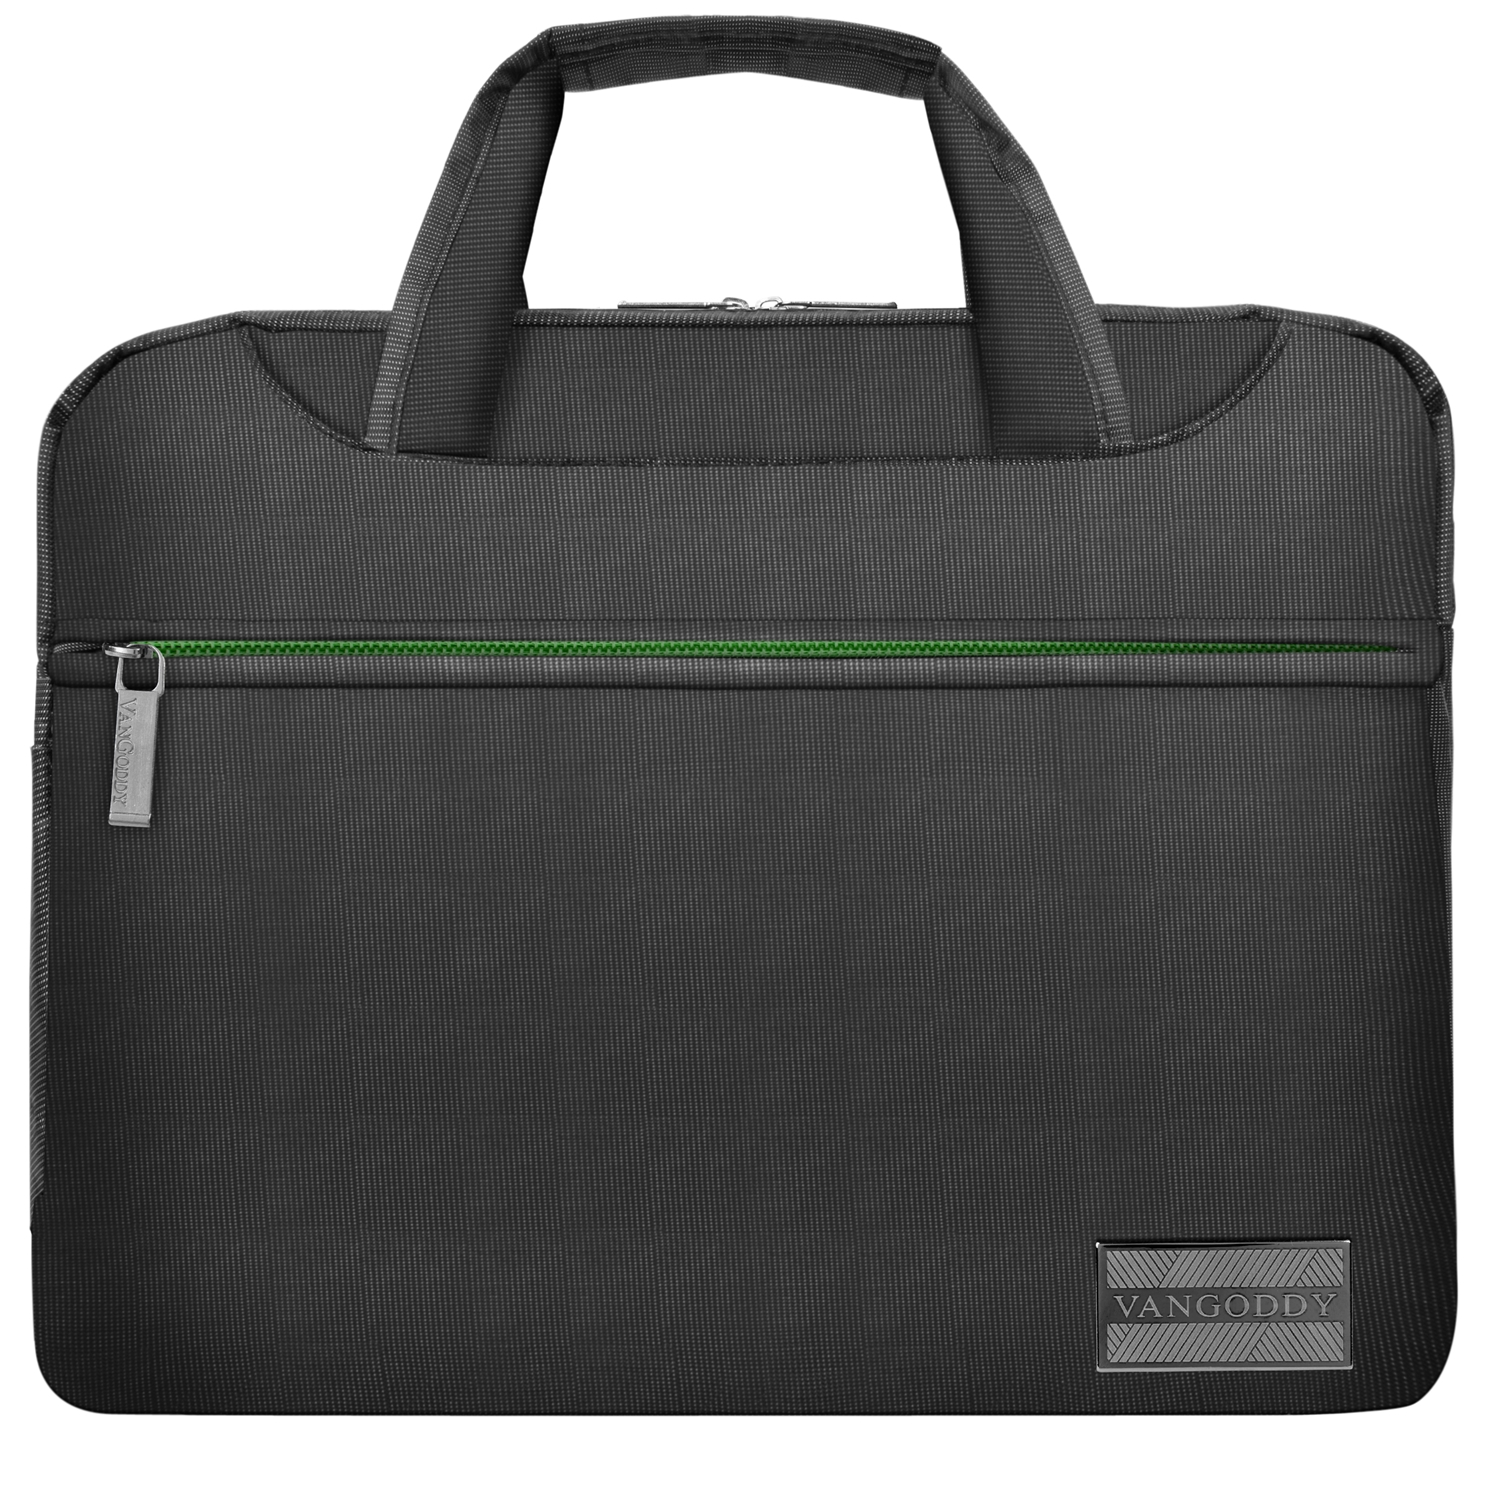 "NineO Messenger Bag 10"" (Gray/Green)"